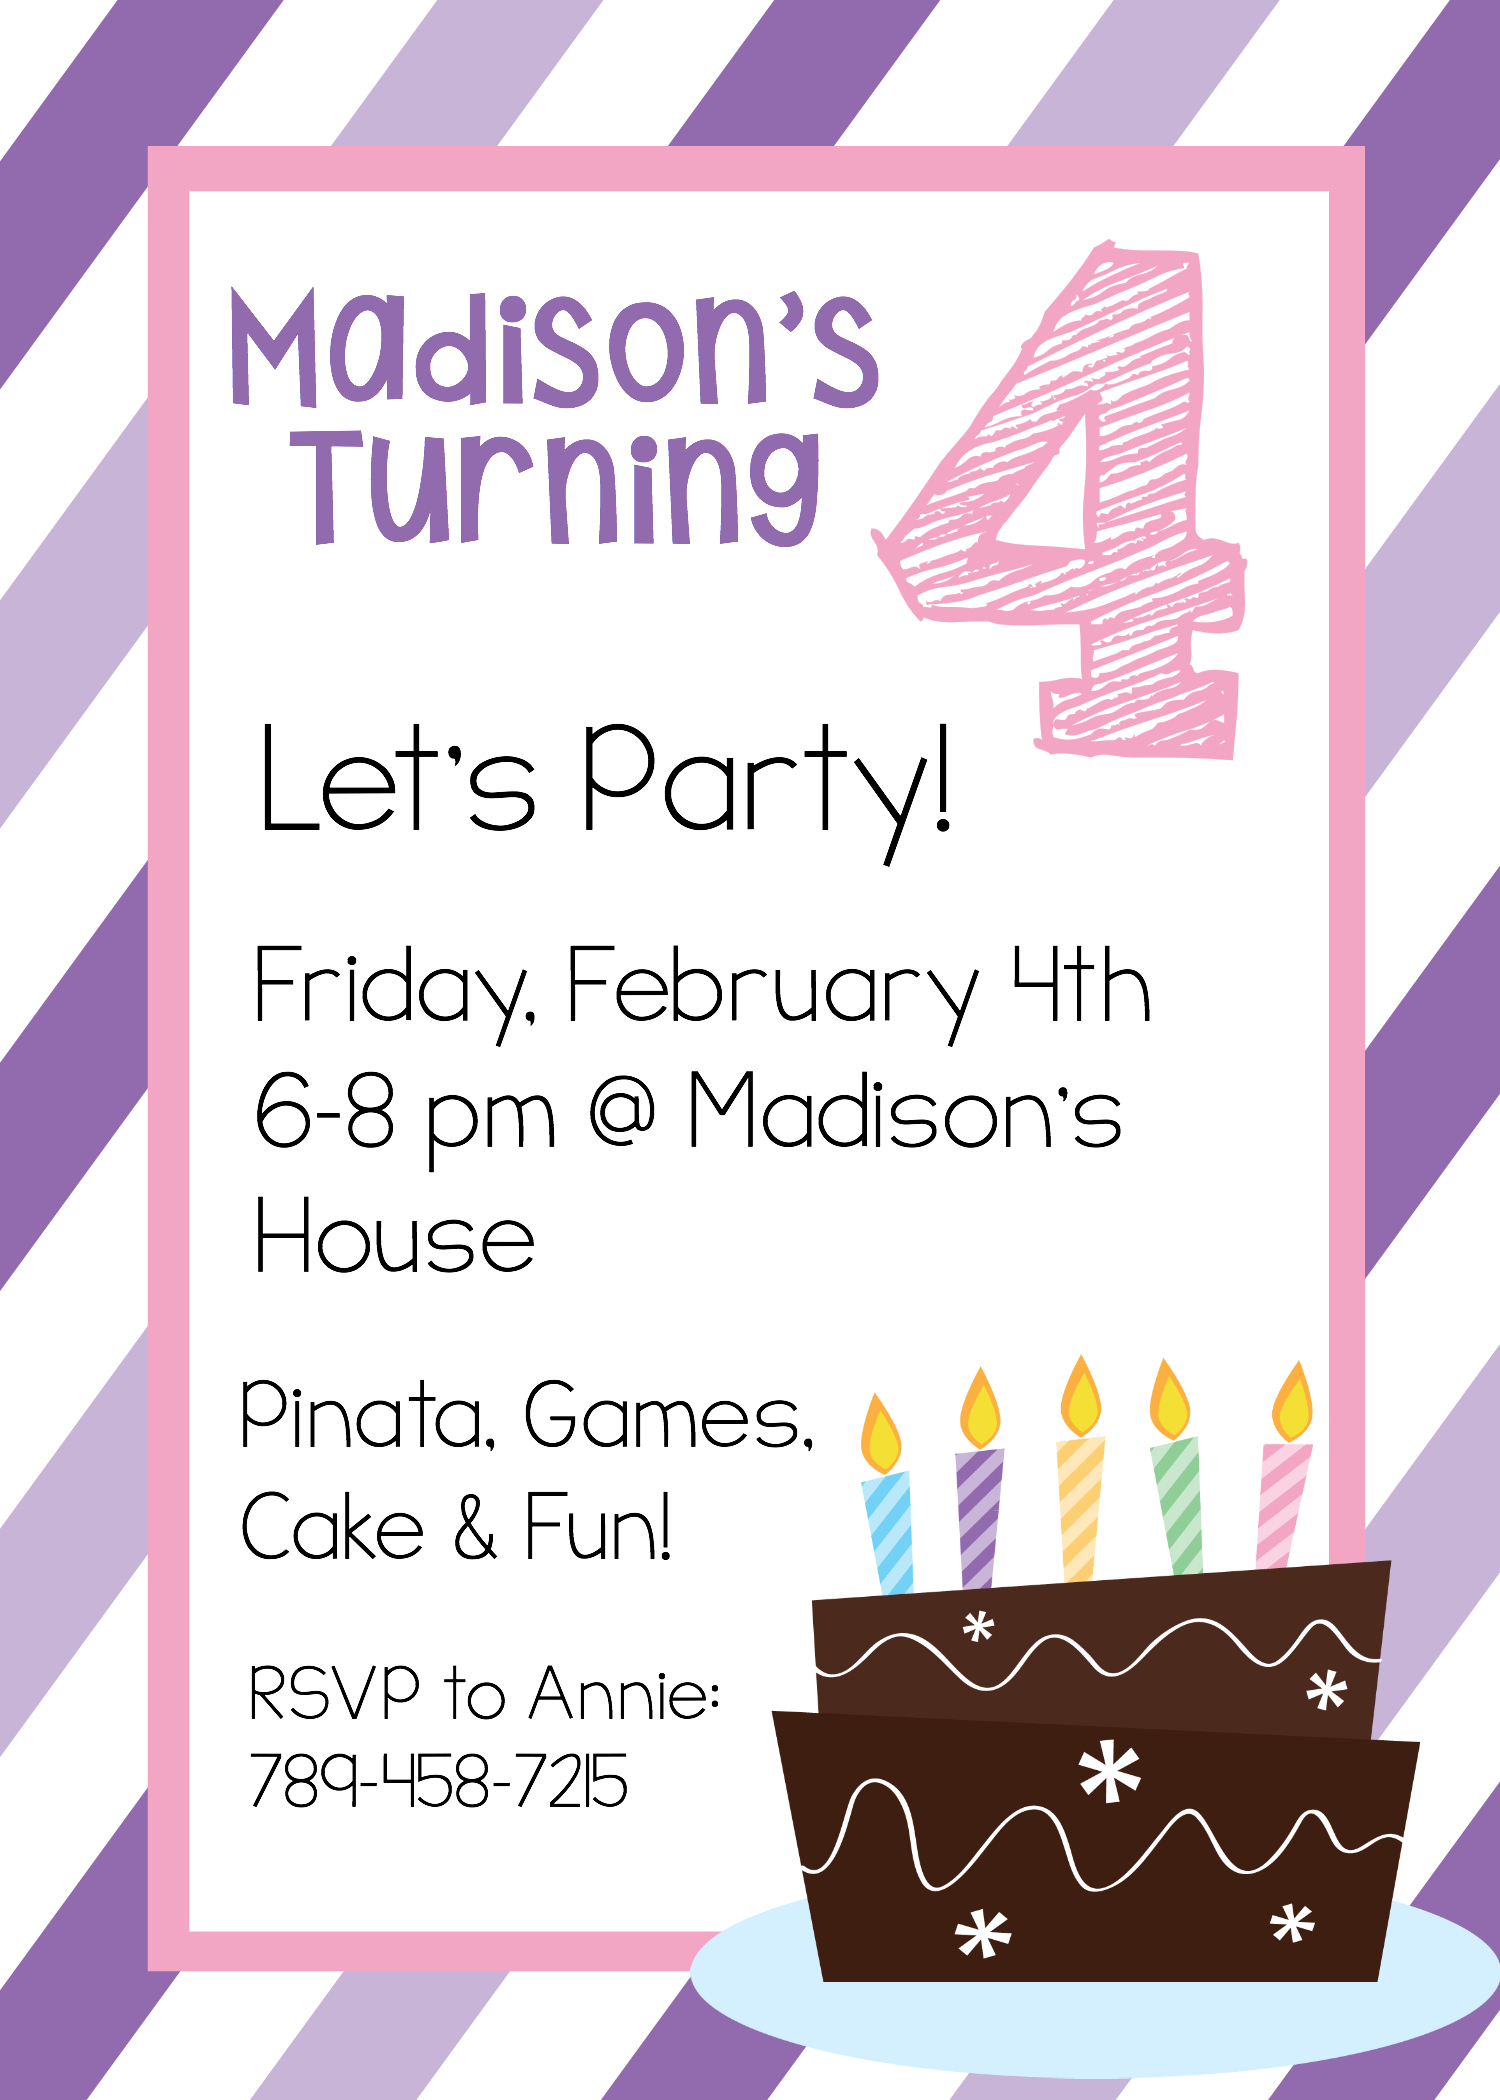 Free Printable Birthday Invitation Templates - Free printable birthday party invitations templates